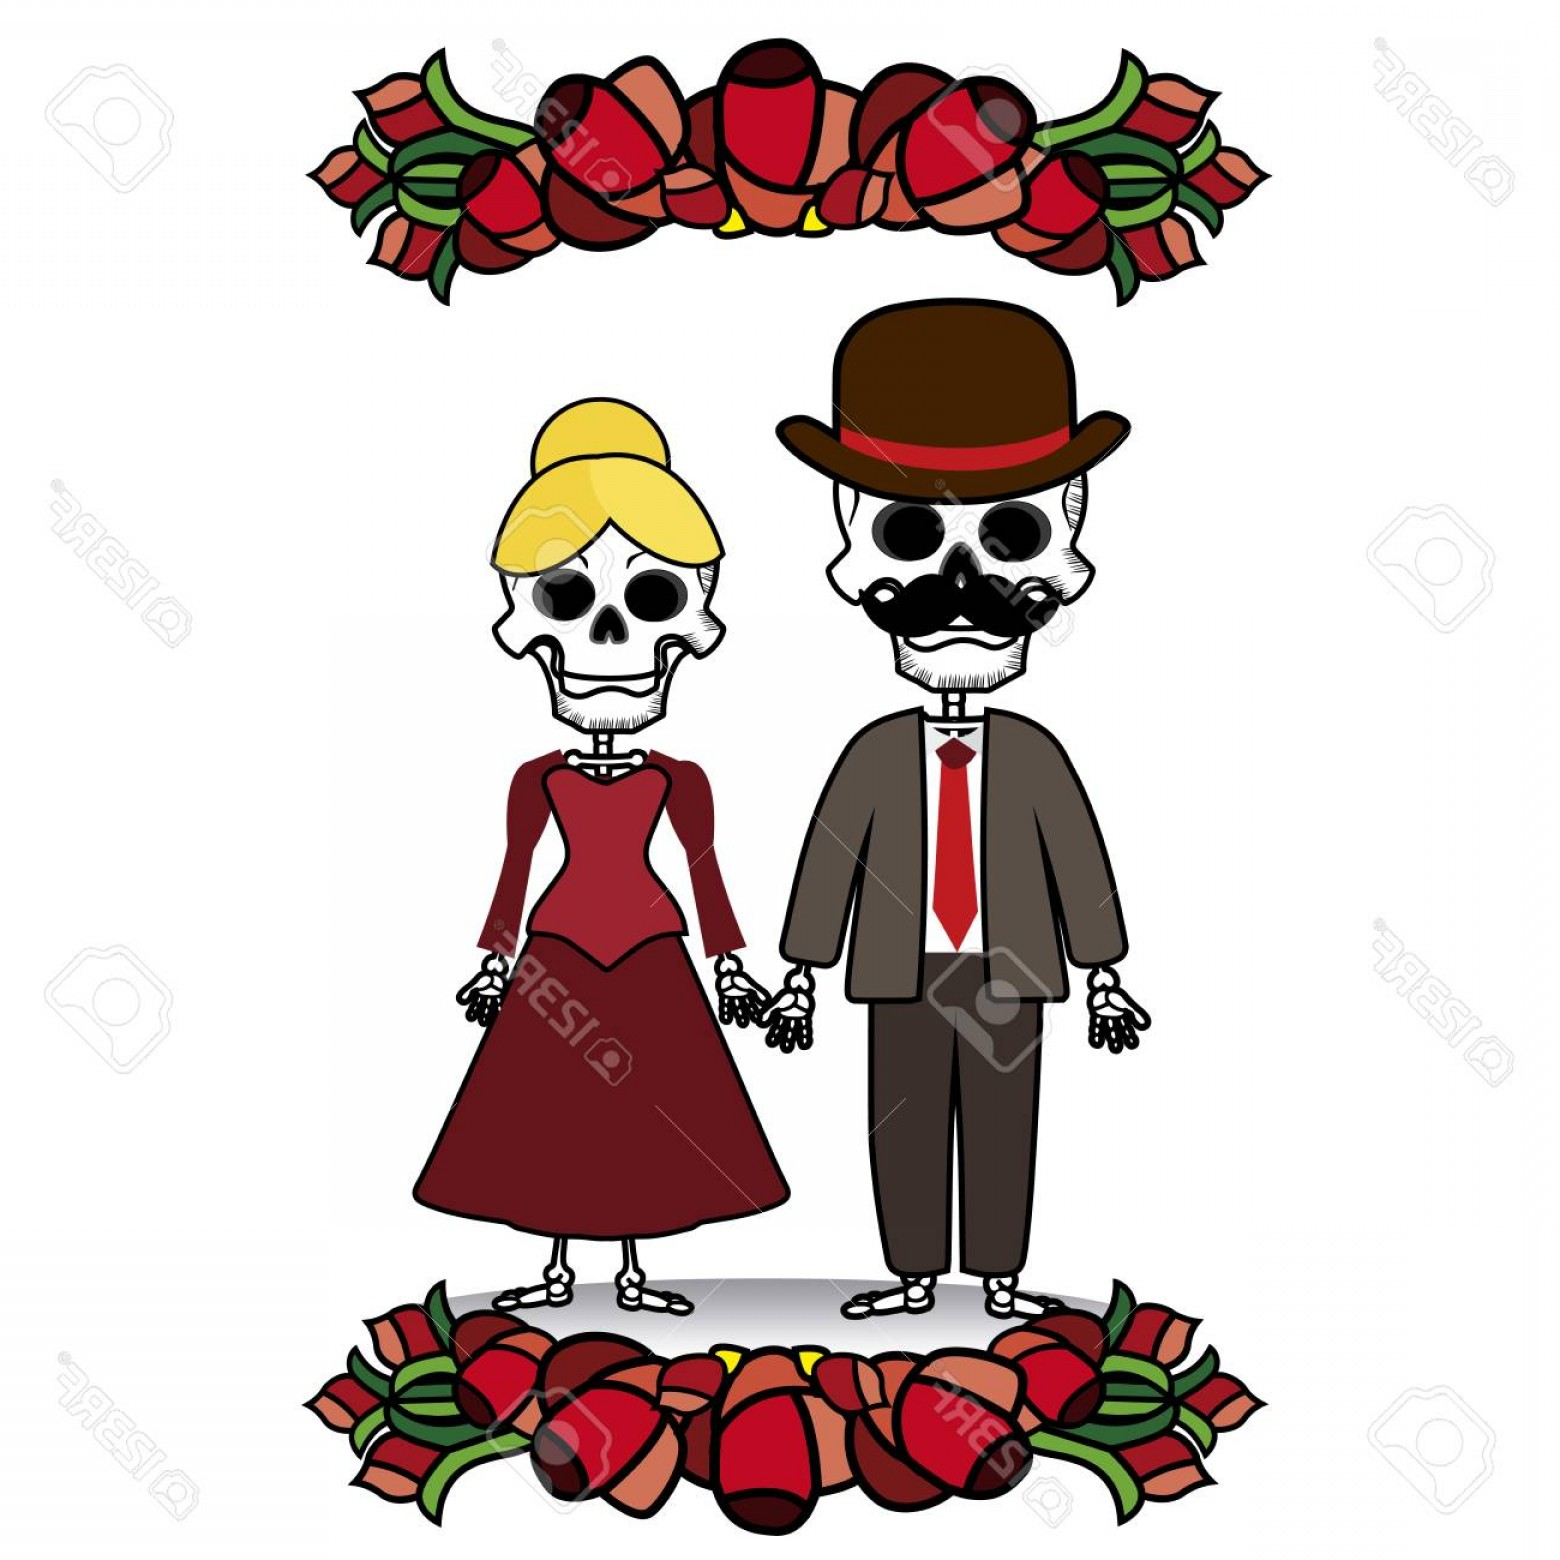 Skeletons In Love Vector: Photostock Vector Vector Image Two Skeletons With Flowers